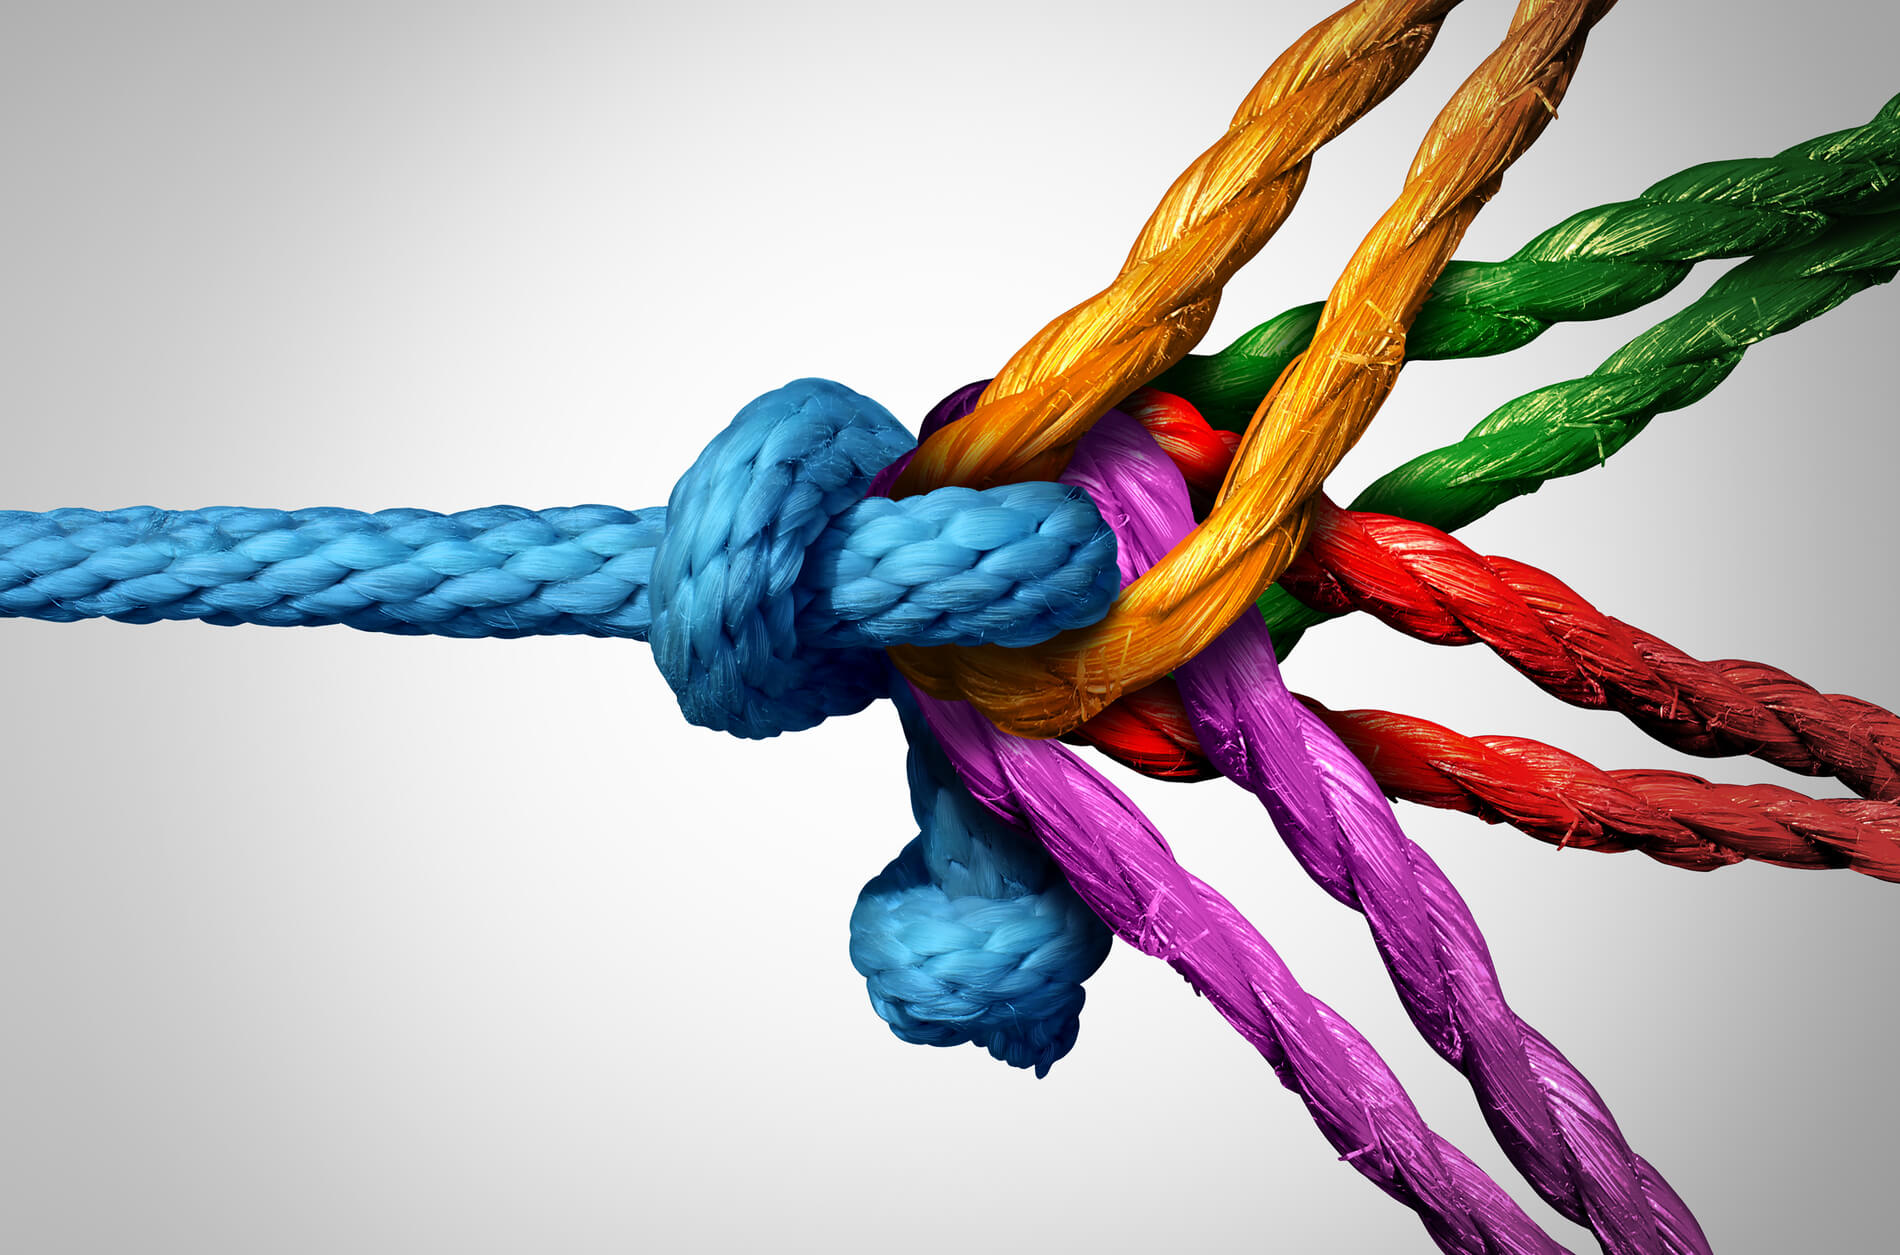 6 Sure-Fire Ways to Build More Local Links